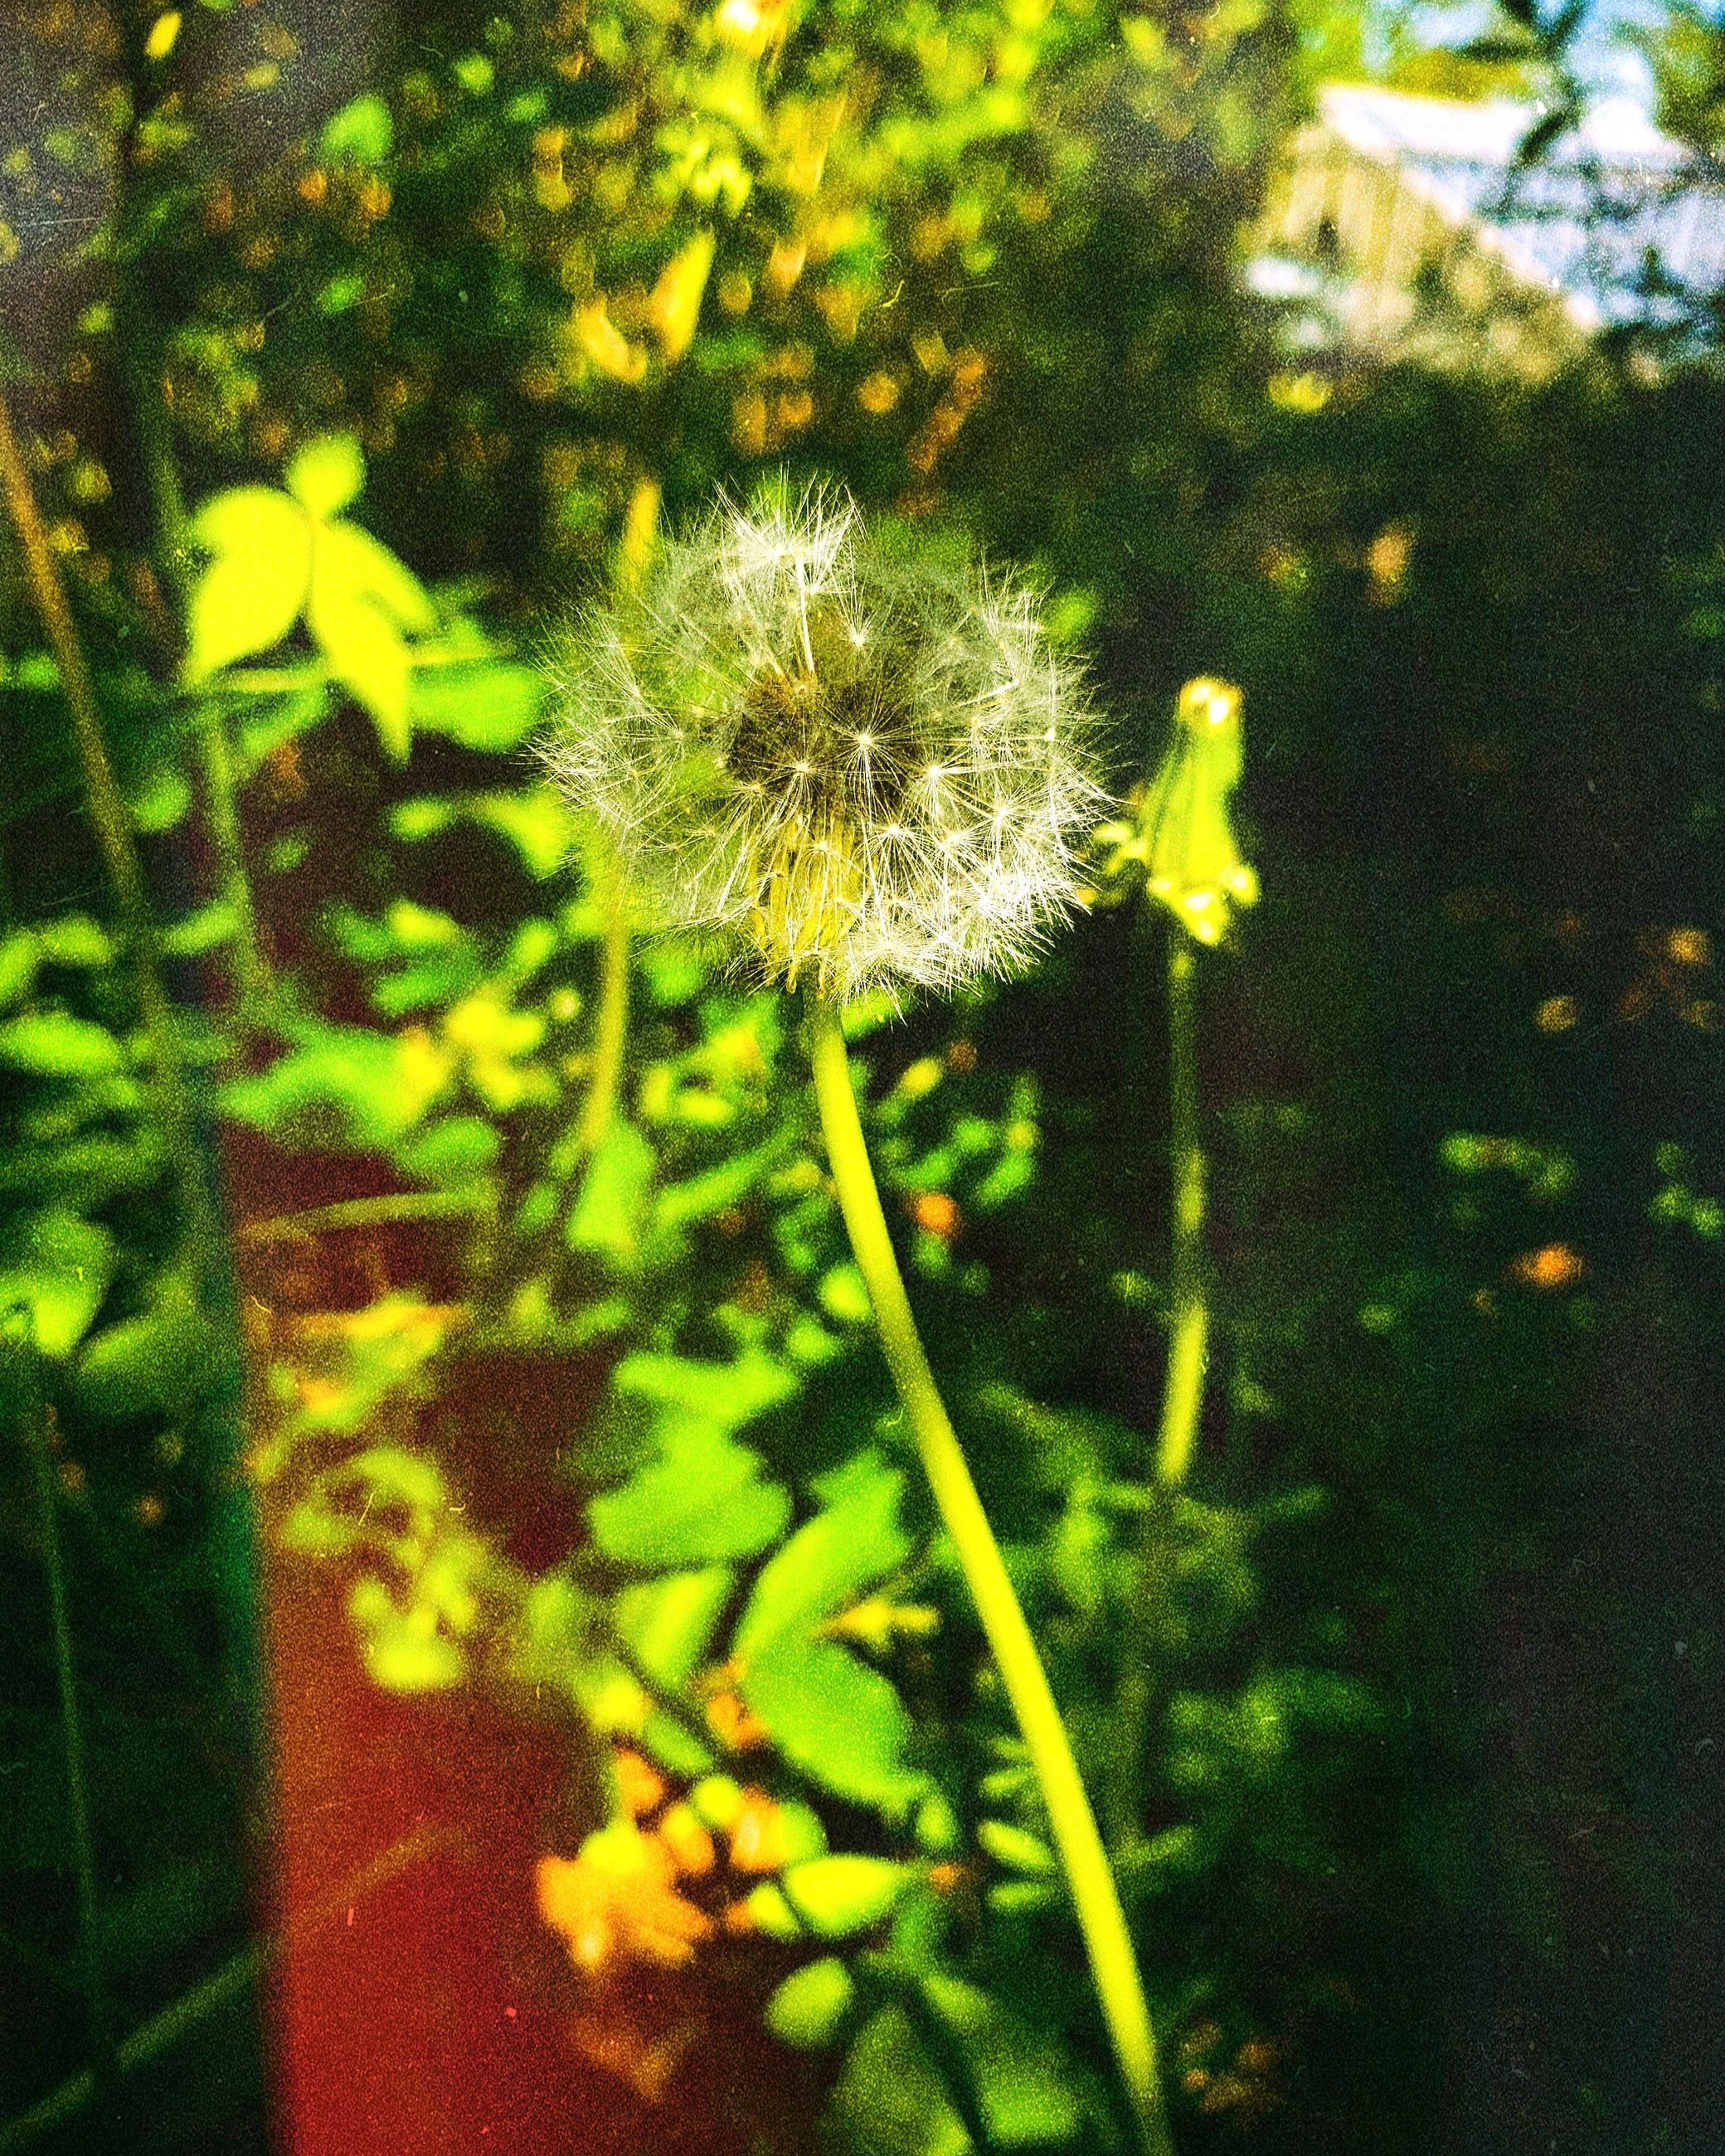 flower, plant, flowering plant, growth, freshness, dandelion, fragility, vulnerability, nature, close-up, beauty in nature, focus on foreground, inflorescence, no people, day, plant stem, flower head, outdoors, softness, selective focus, dandelion seed, spring